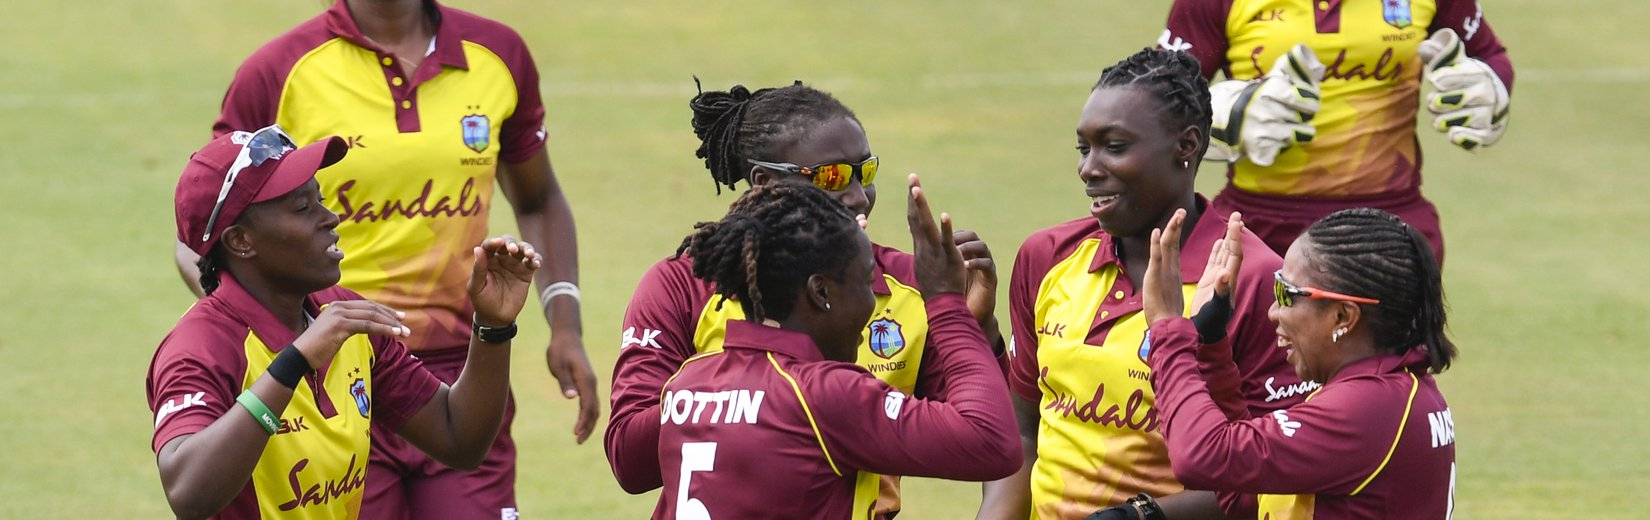 WINDIES Women Squad for Camp ahead of Pakistan Series